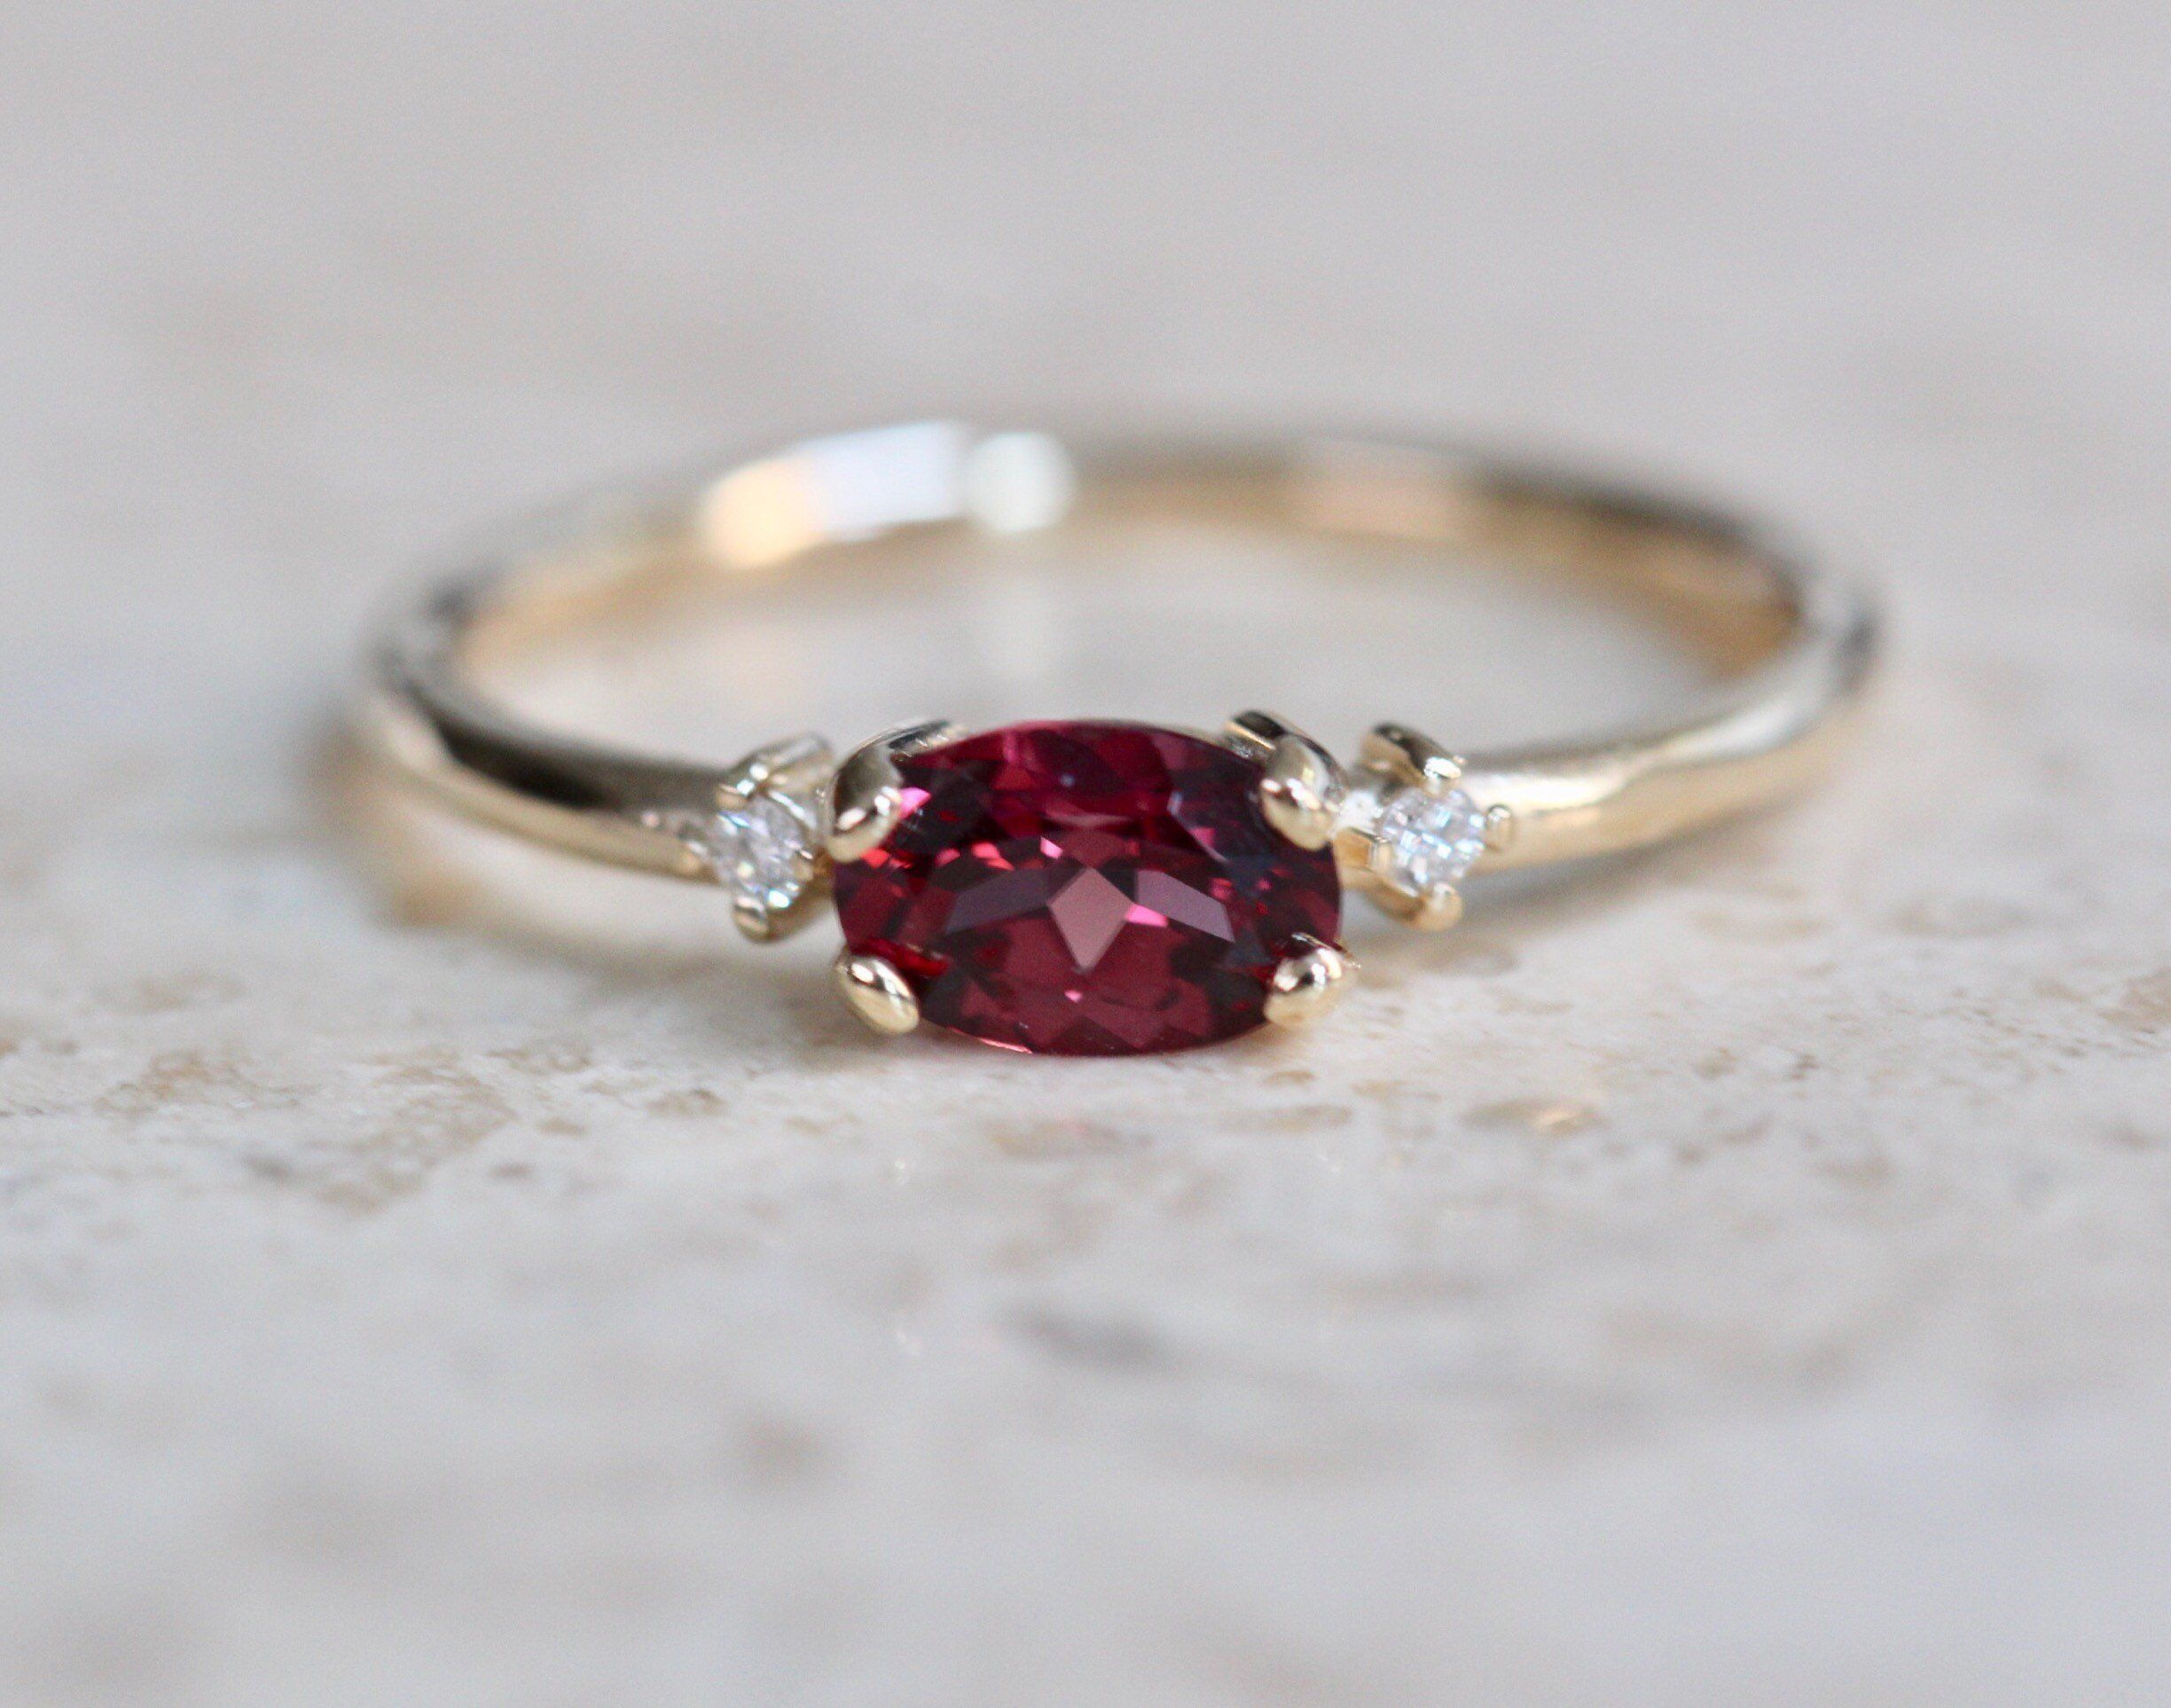 Rustic East West Garnet Ring Solitaire Band 14kt Gold Size 6